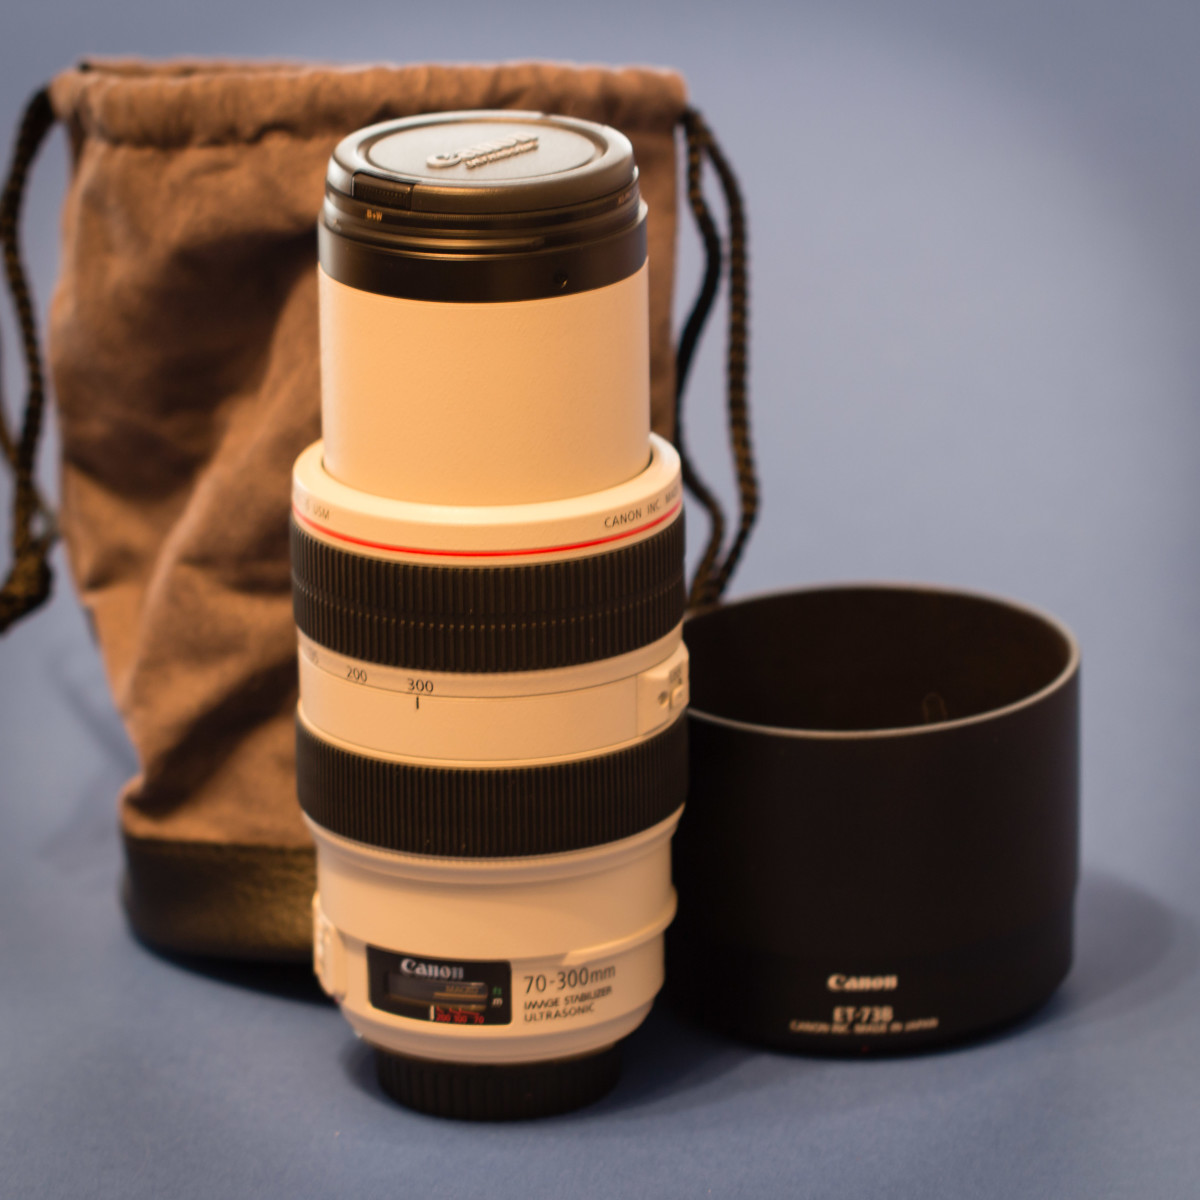 The soft lens case that comes with many lenses, is definitely not ok for transporting lenses safely.